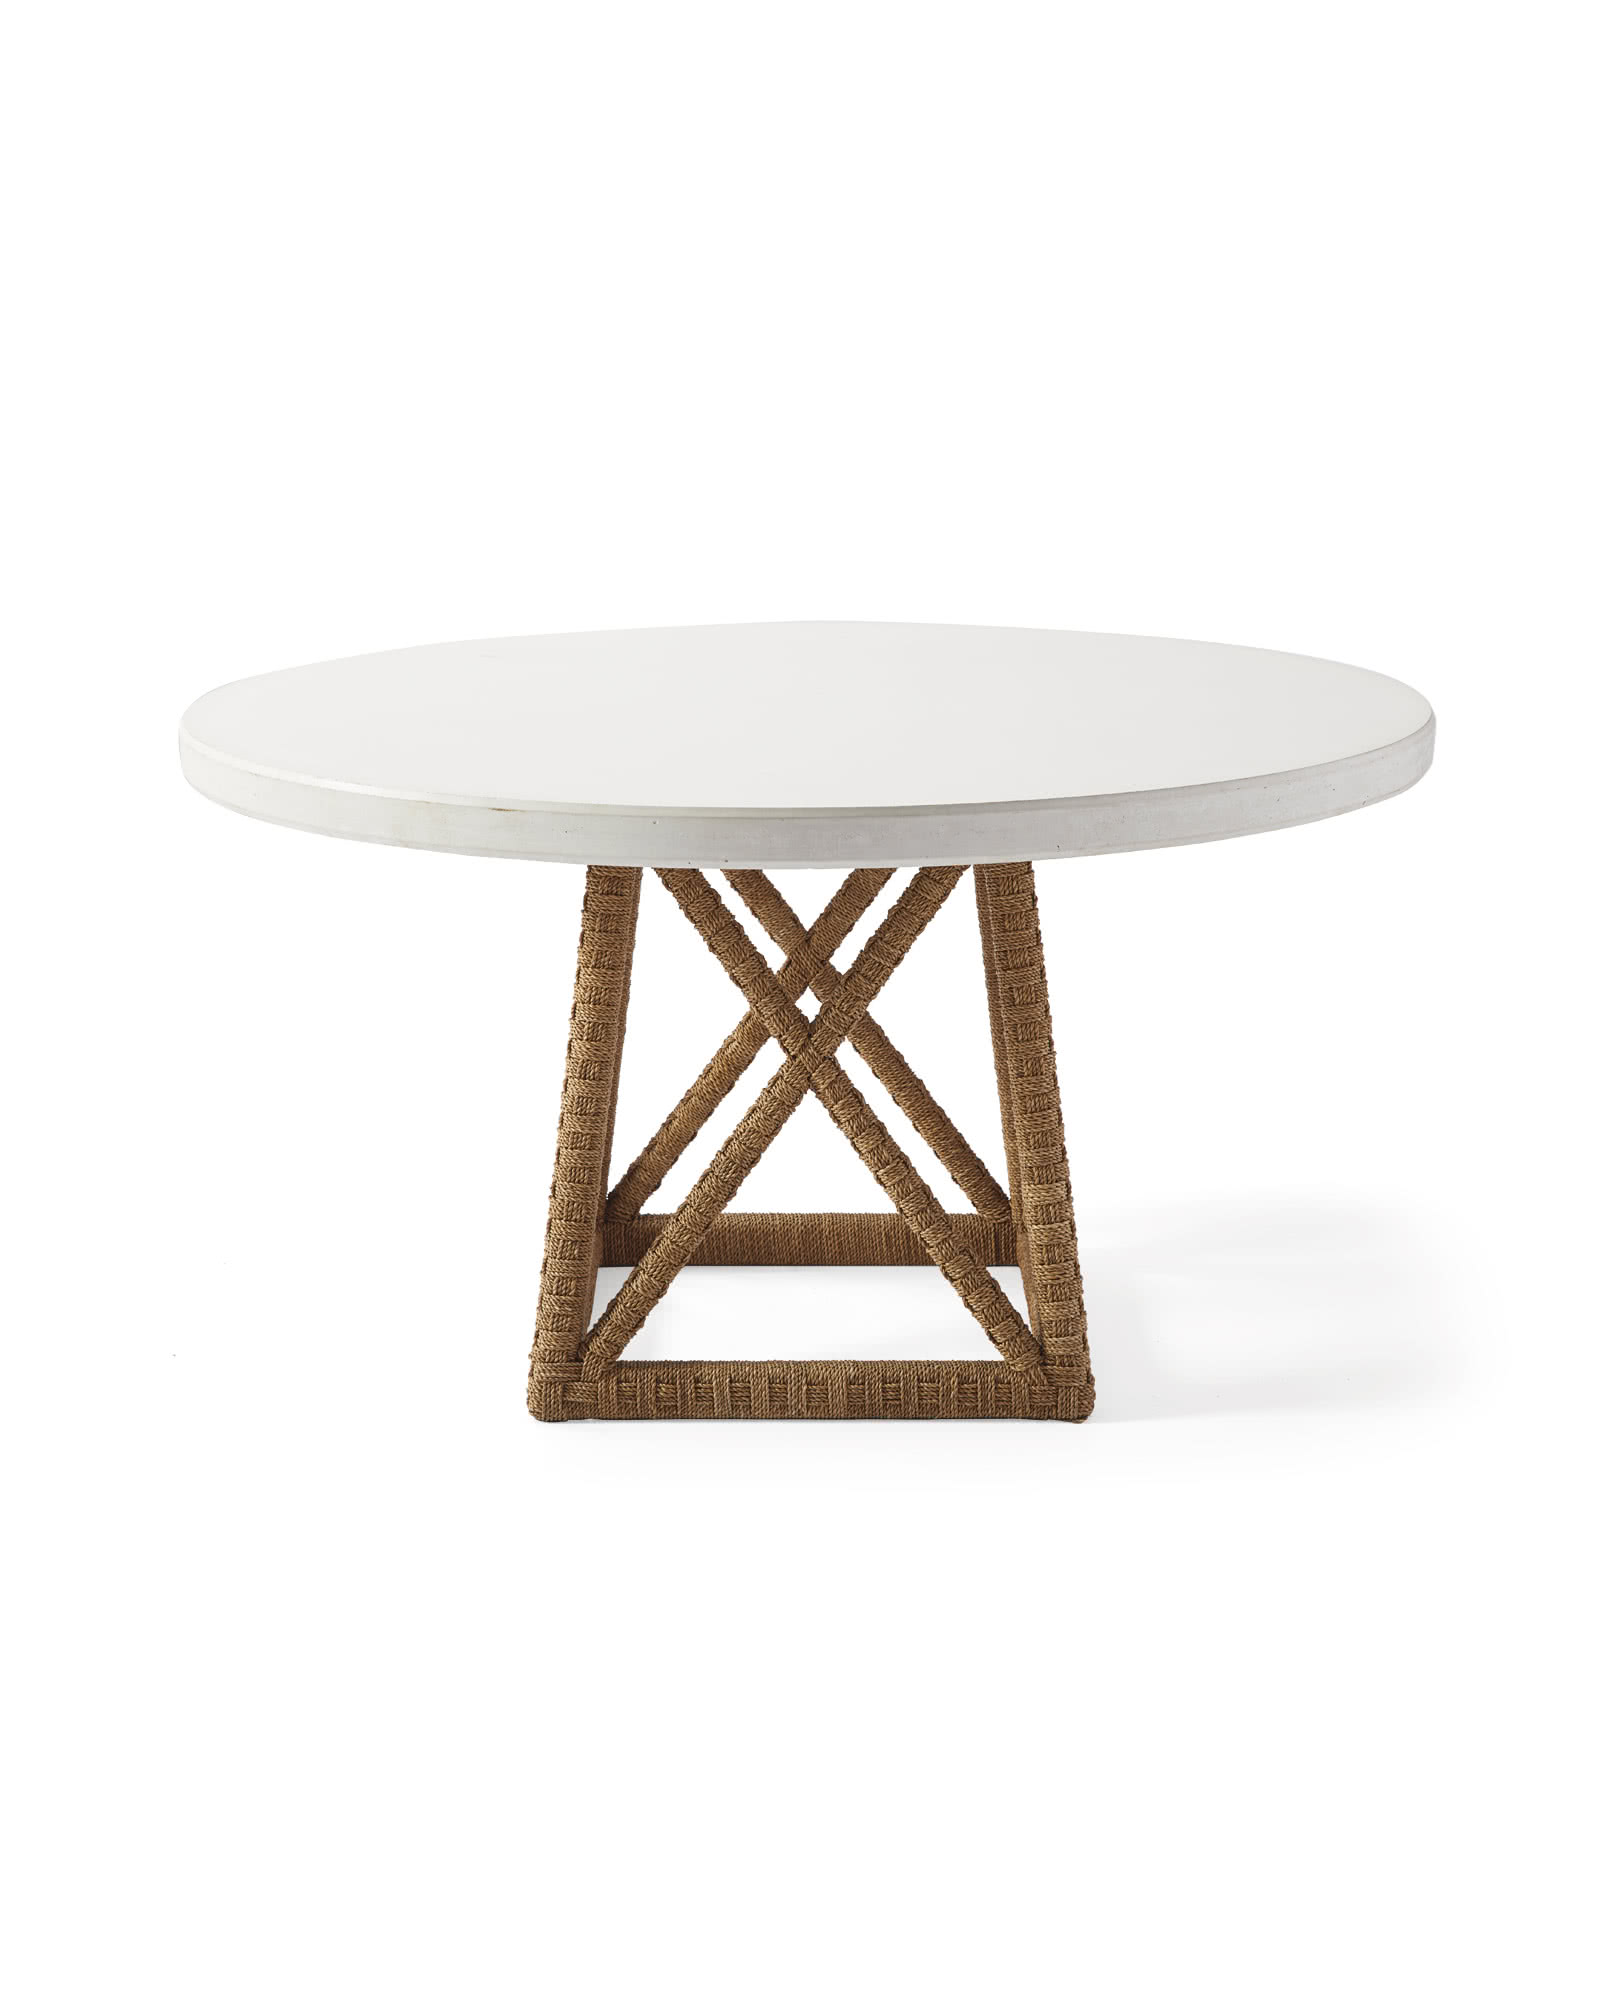 Thornhill Round Dining Table,